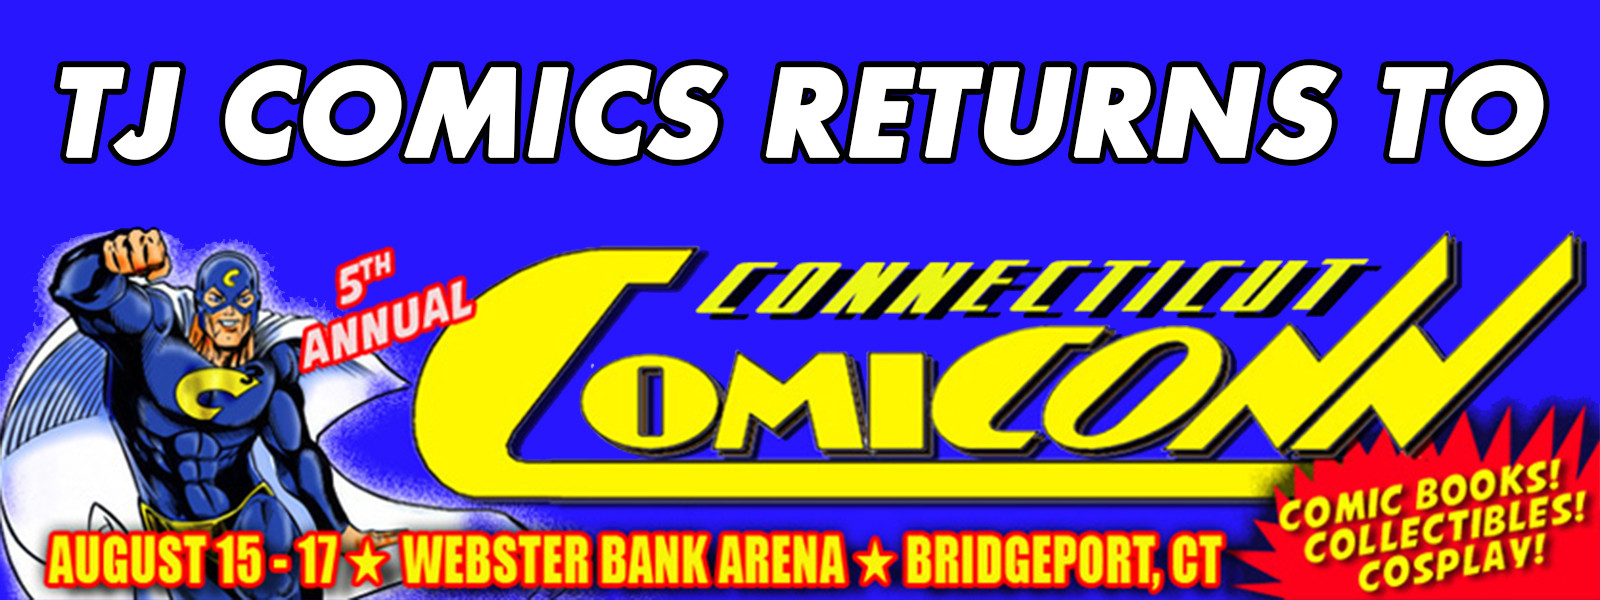 TJ Comics returns to ComiCONN 2014